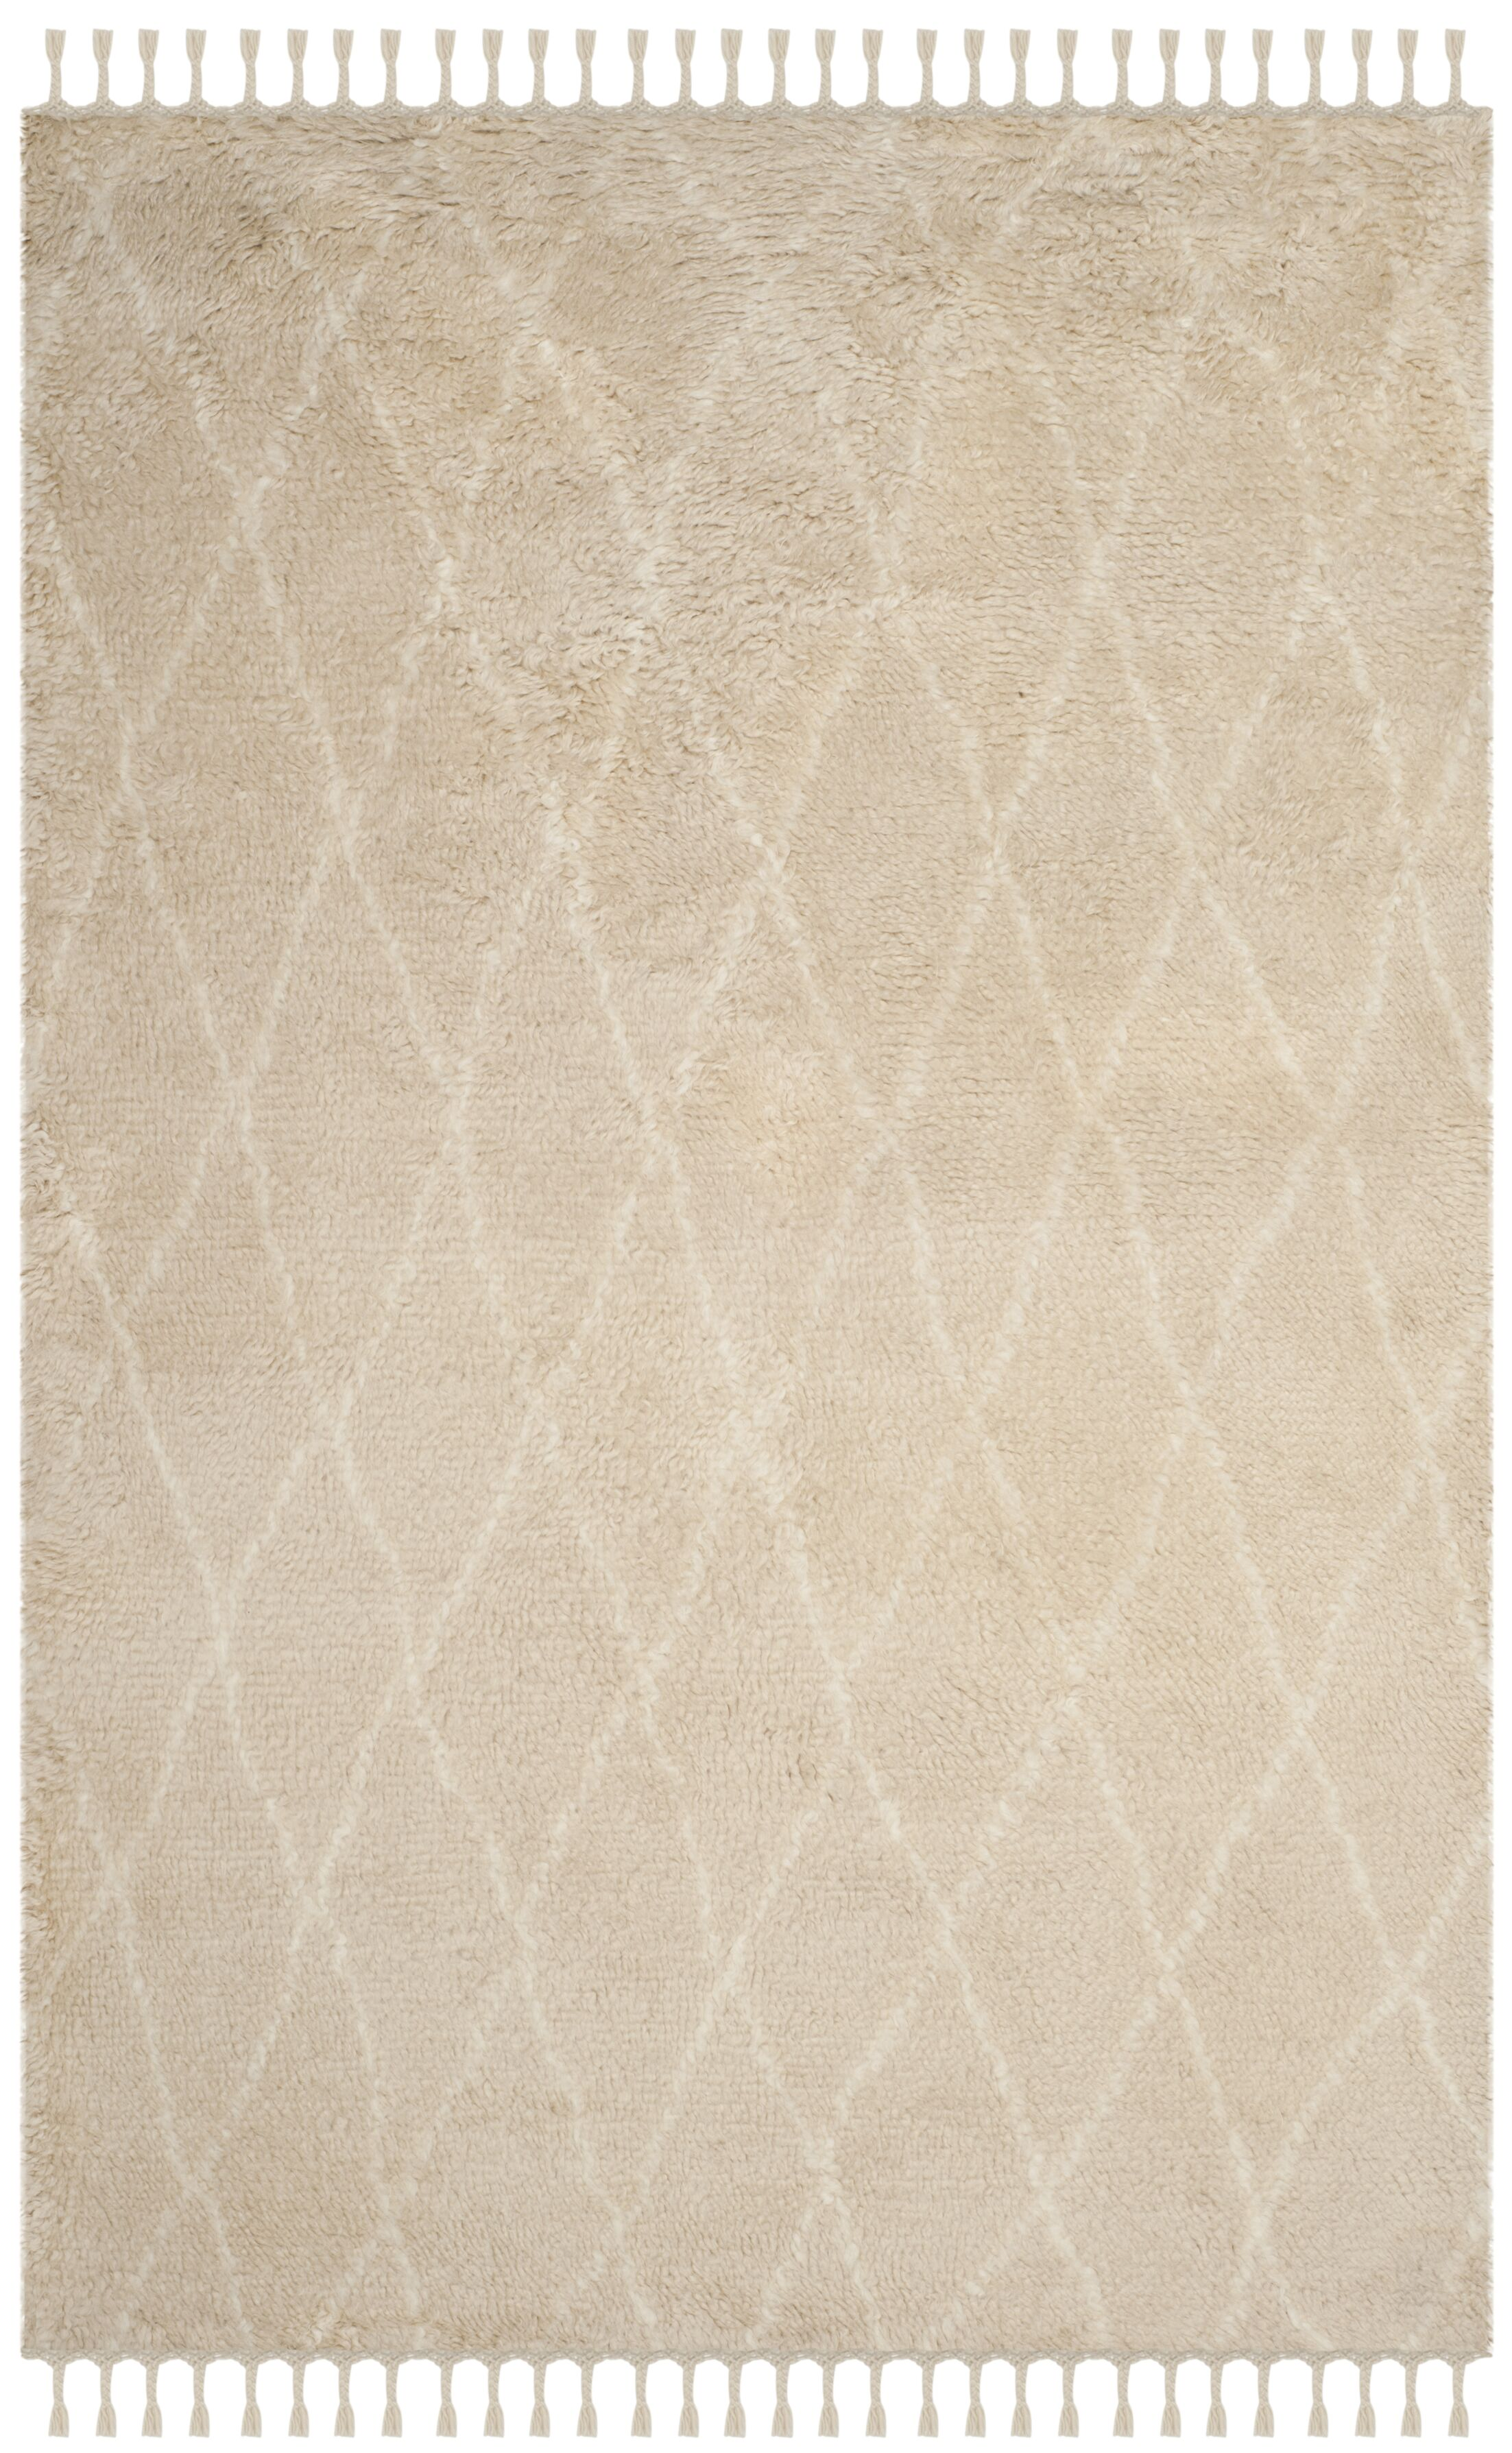 Cosima Hand-Knotted Beige/Ivory Area Rug Rug Size: Rectangle 4' x 6'